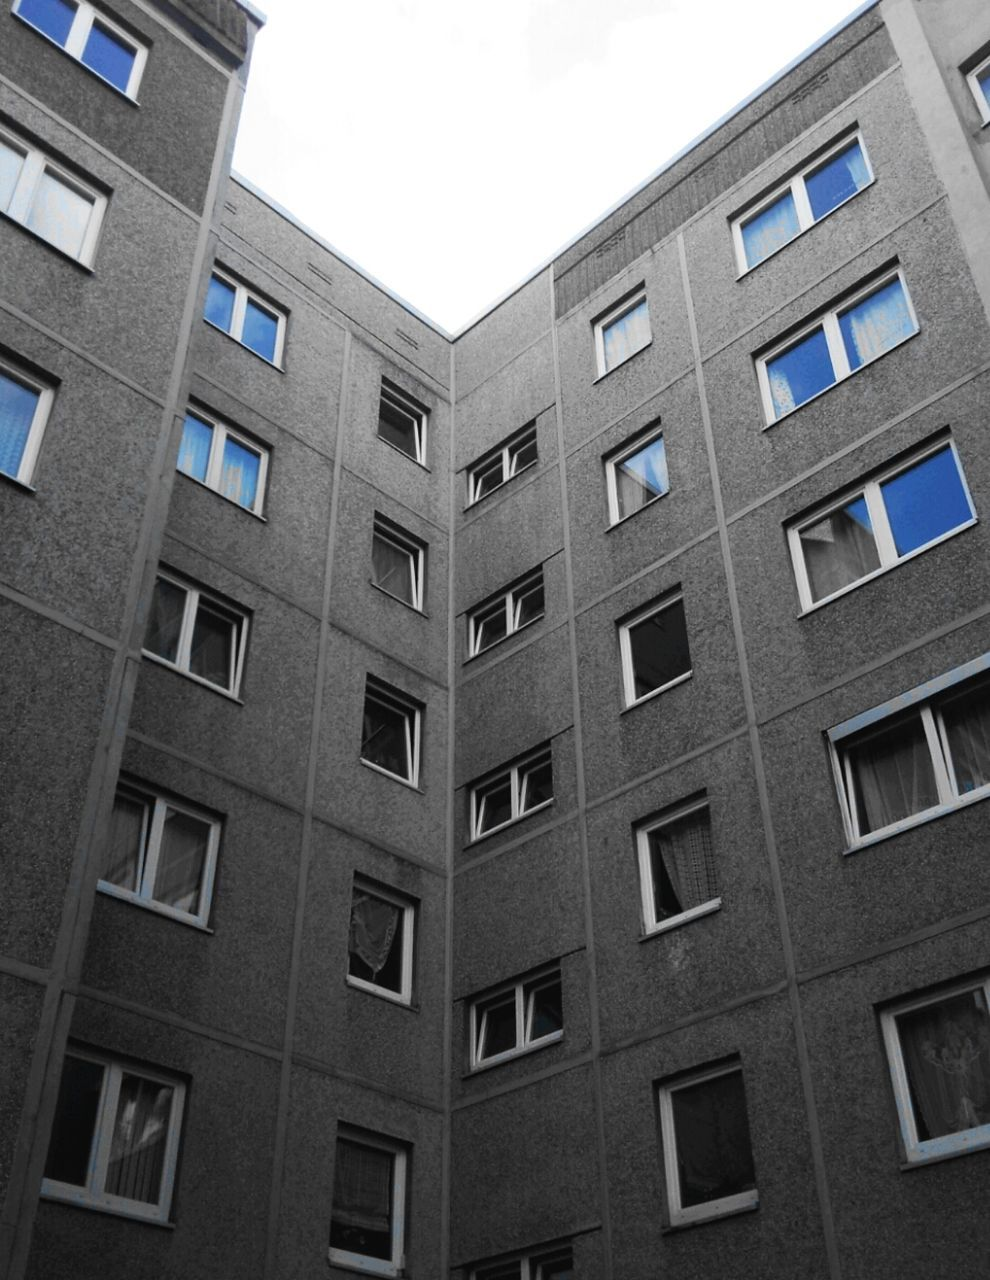 window, architecture, building exterior, built structure, low angle view, conformity, no people, city, day, outdoors